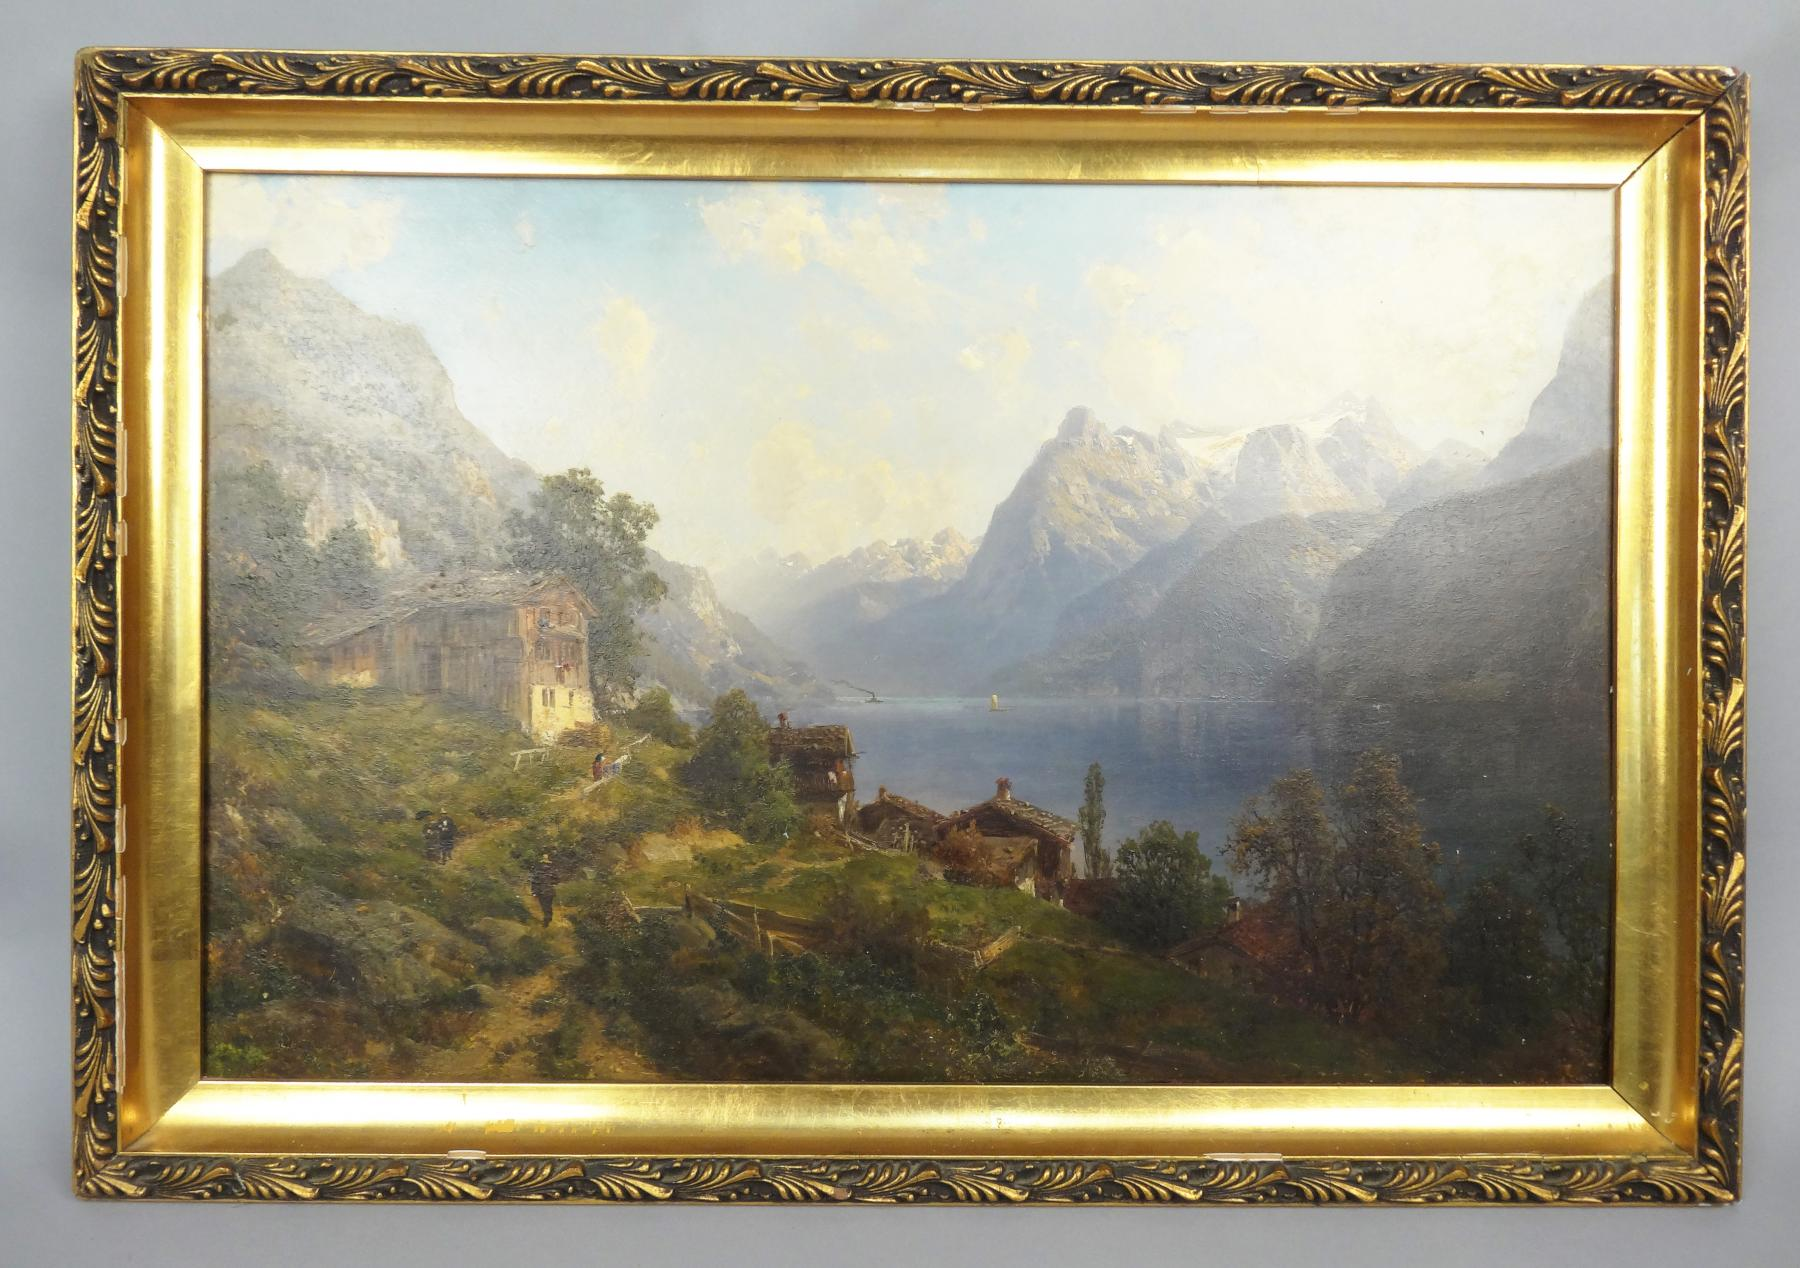 Antique Oil Painting Monumental Landscape Cottages on Mountains with Lake